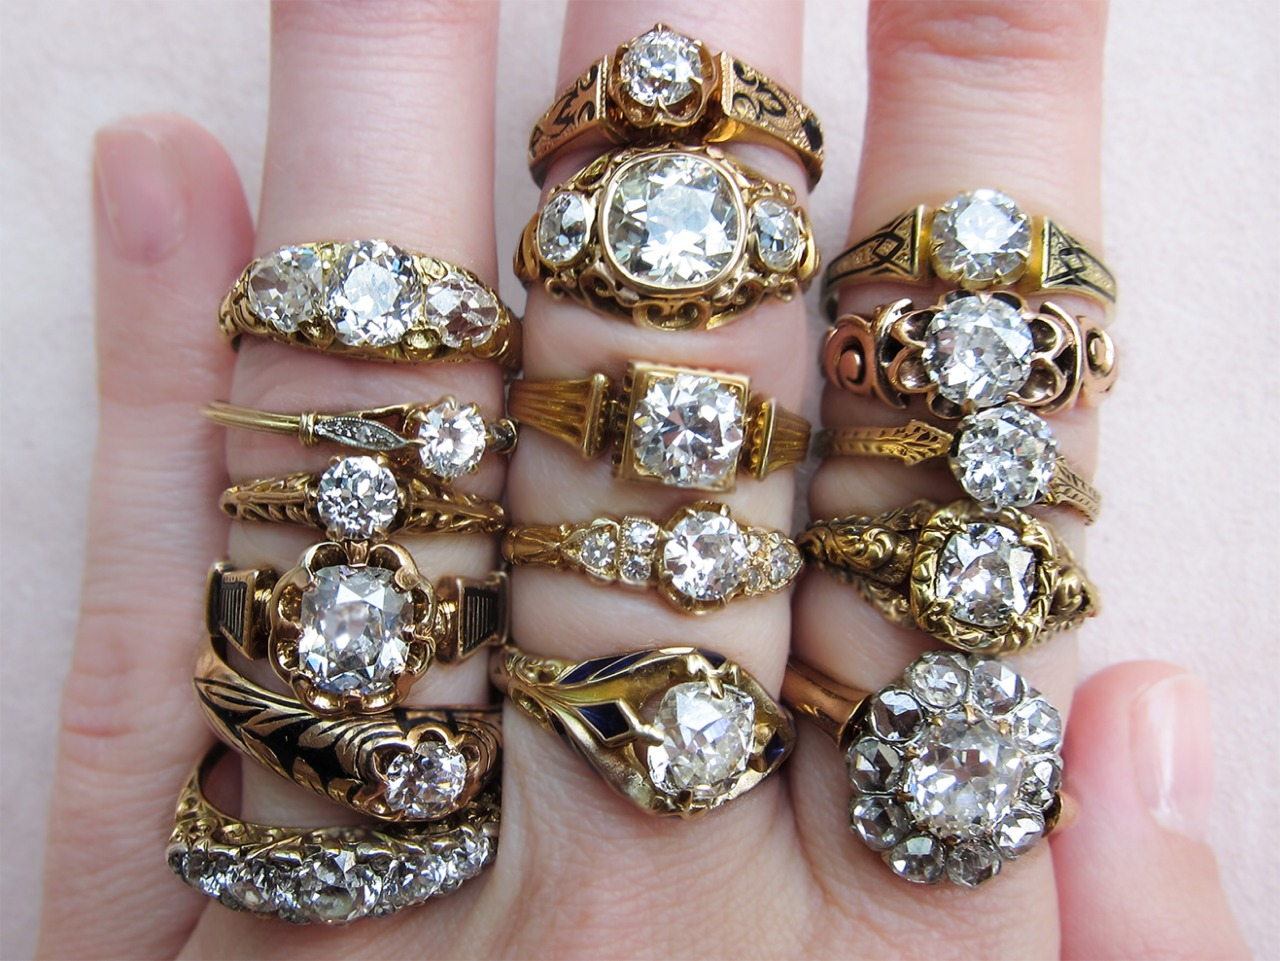 victorian engagement rings victorian wedding rings Antique Victorian engagement rings